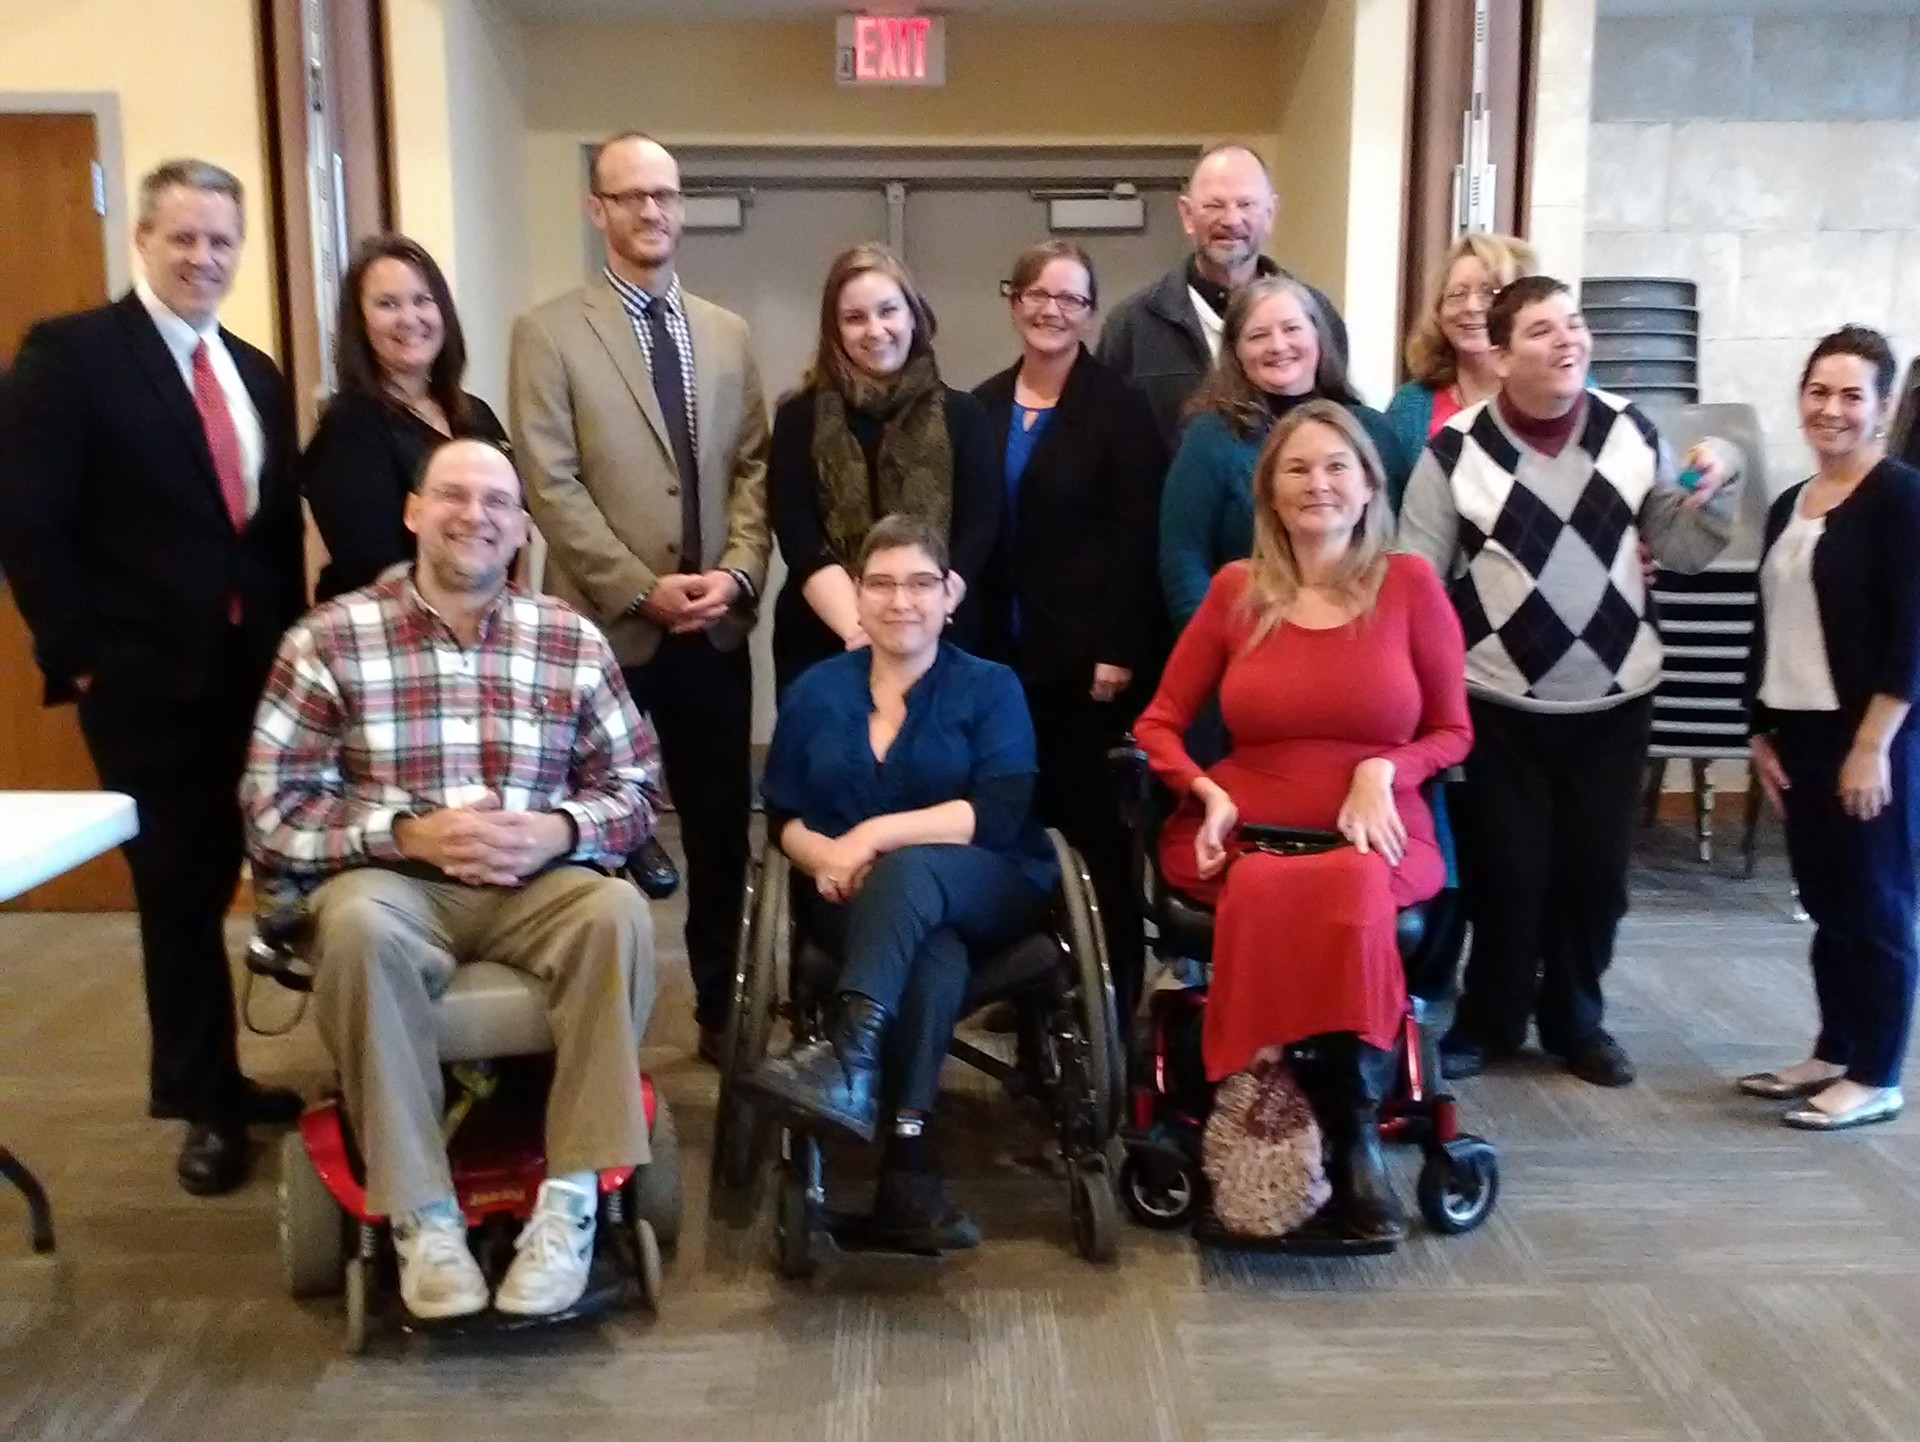 SALT & National Council on Disabilities